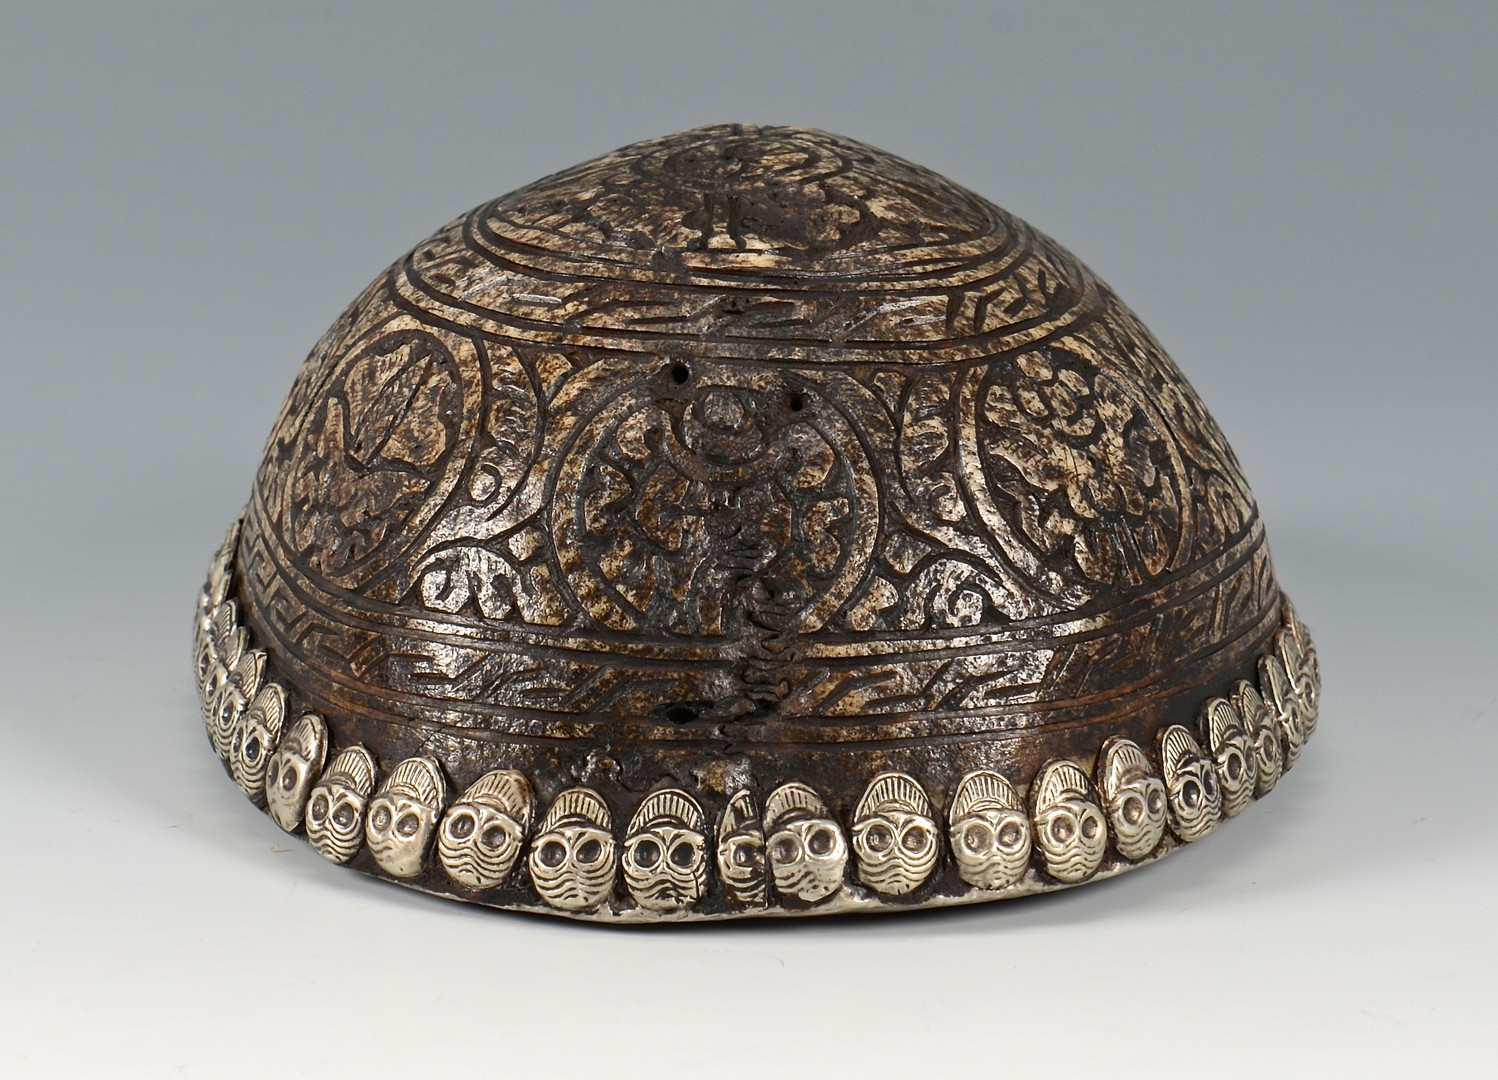 Lot 14: Tibetan Silver Mounted Skull Bowl